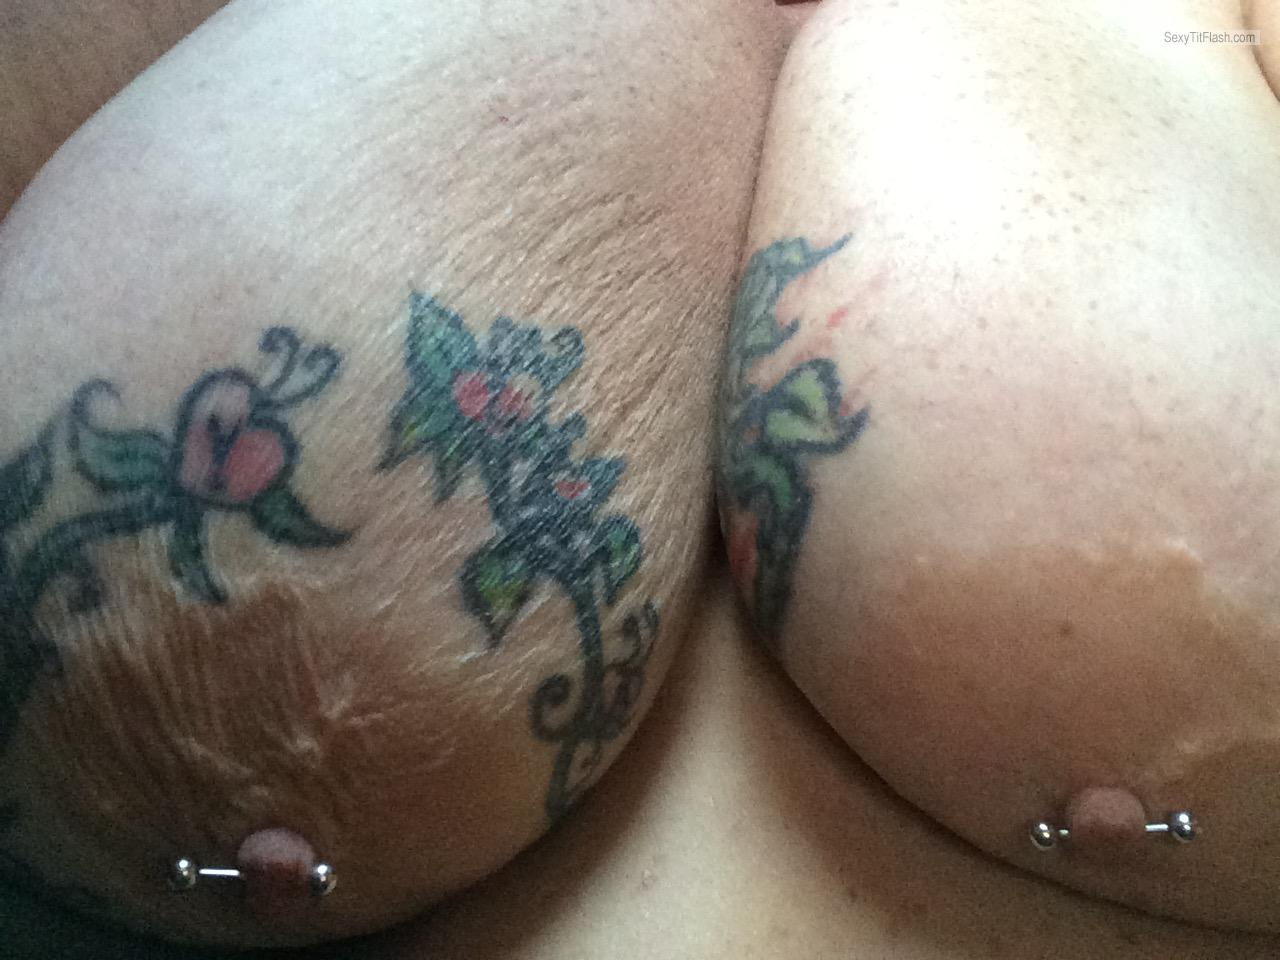 Big Tits Of My Girlfriend Driller56